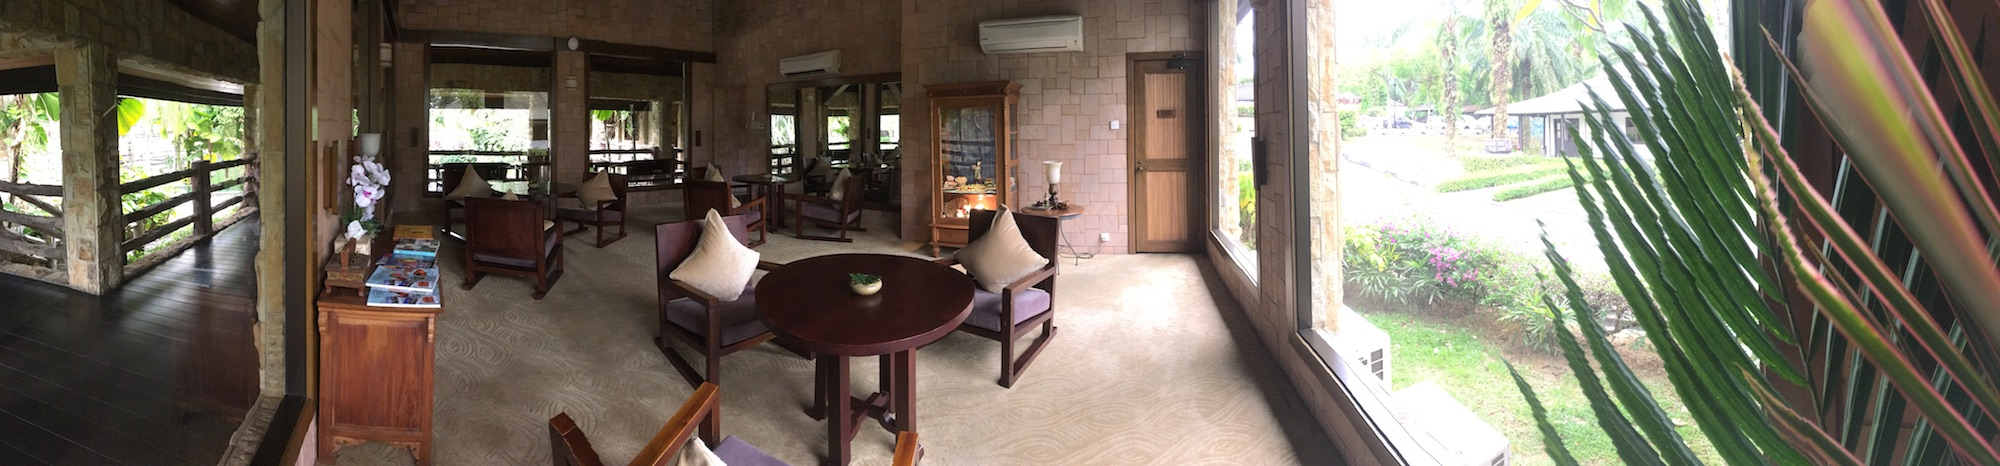 The waiting area of the Sembunyi spa. Wafts of ginger scent filled this room ... ah.